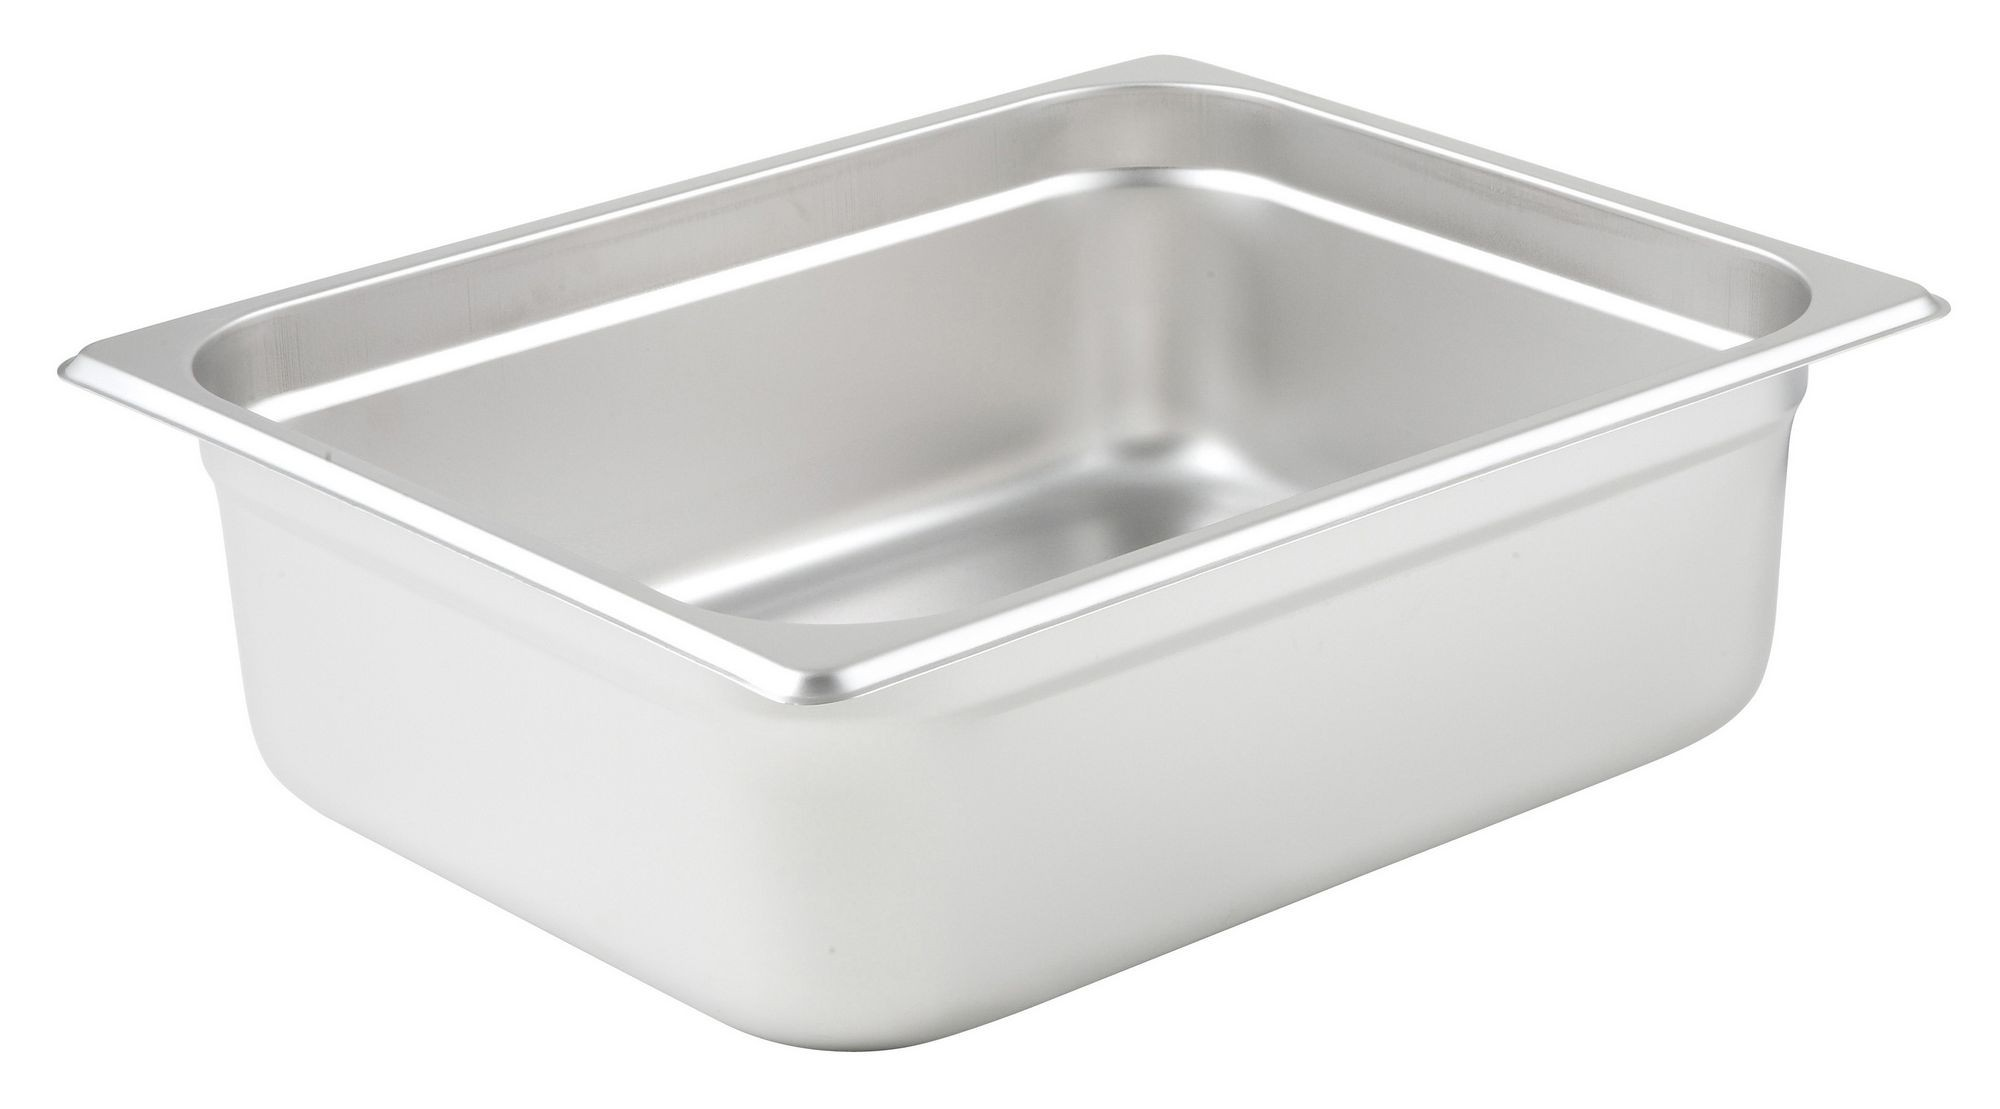 "Winco SPJP-204 1/2 Size Anti-Jam 23 Gauge Steam Table Pan 4"" Deep"